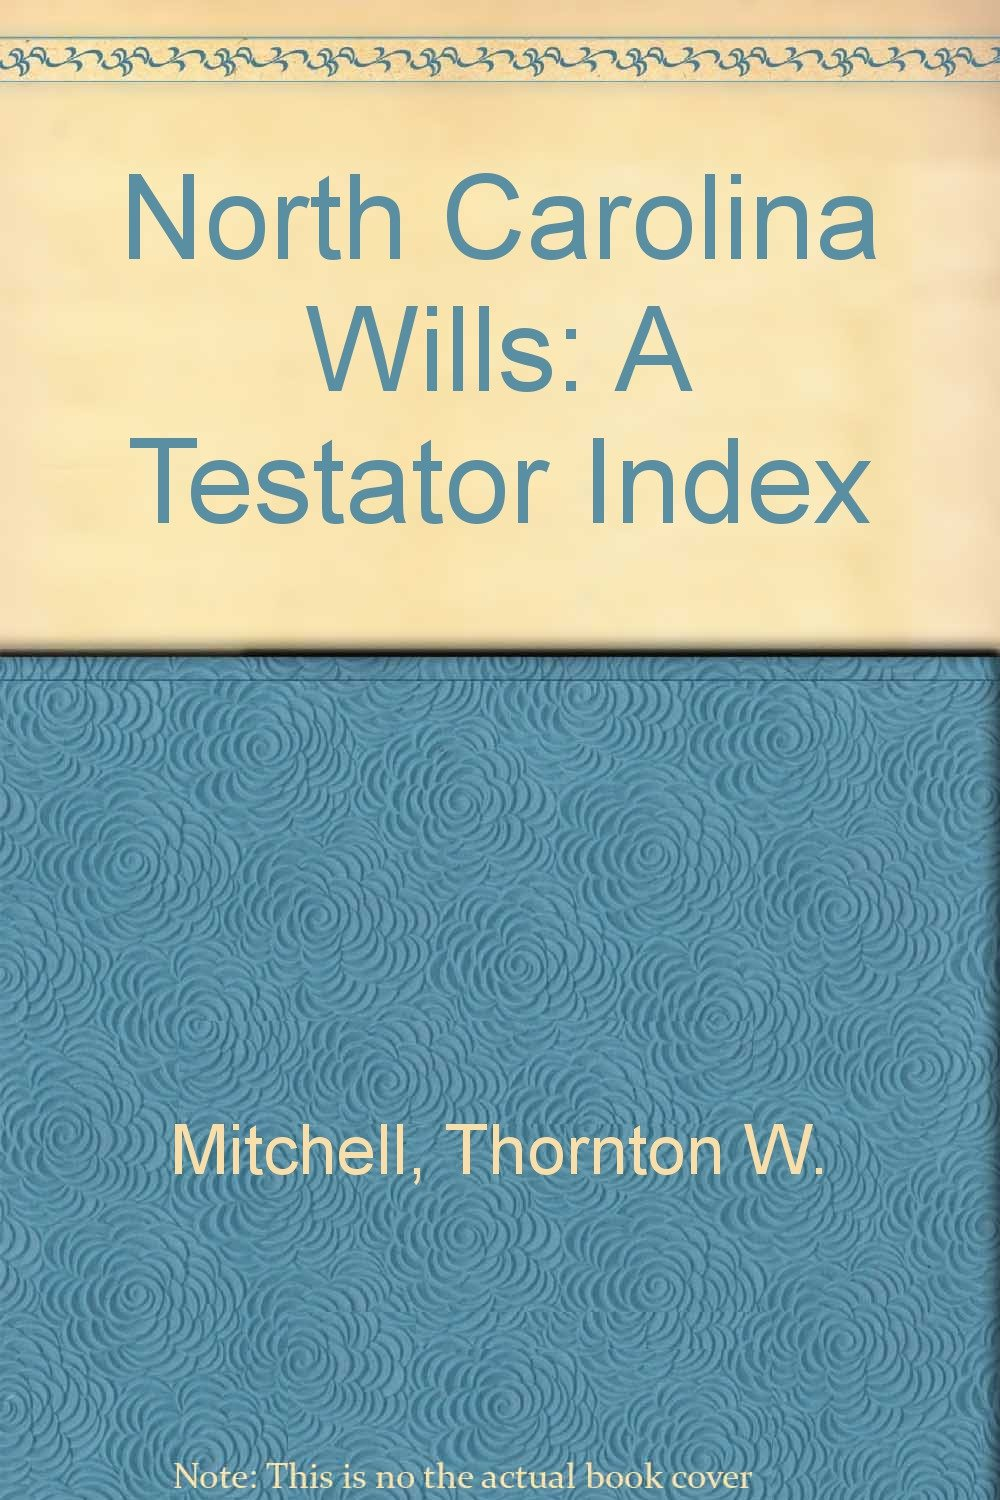 North Carolina Wills: A Testator Index: Thornton W. Mitchell:  9780961734305: Amazon.com: Books